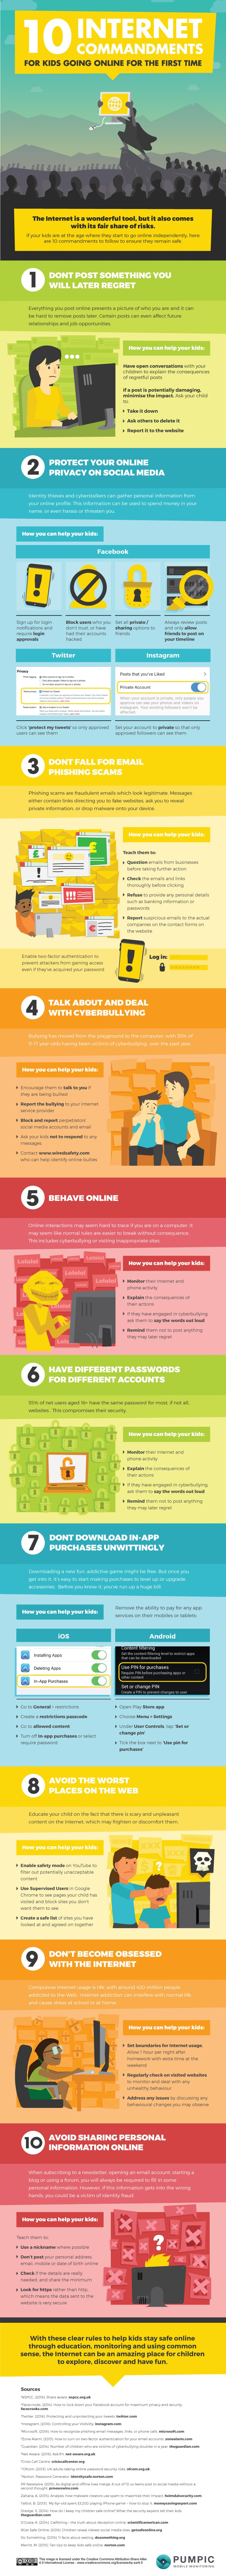 X-Internet-Commandments-for-Kids-Going-Online-for-First-Time-DV4